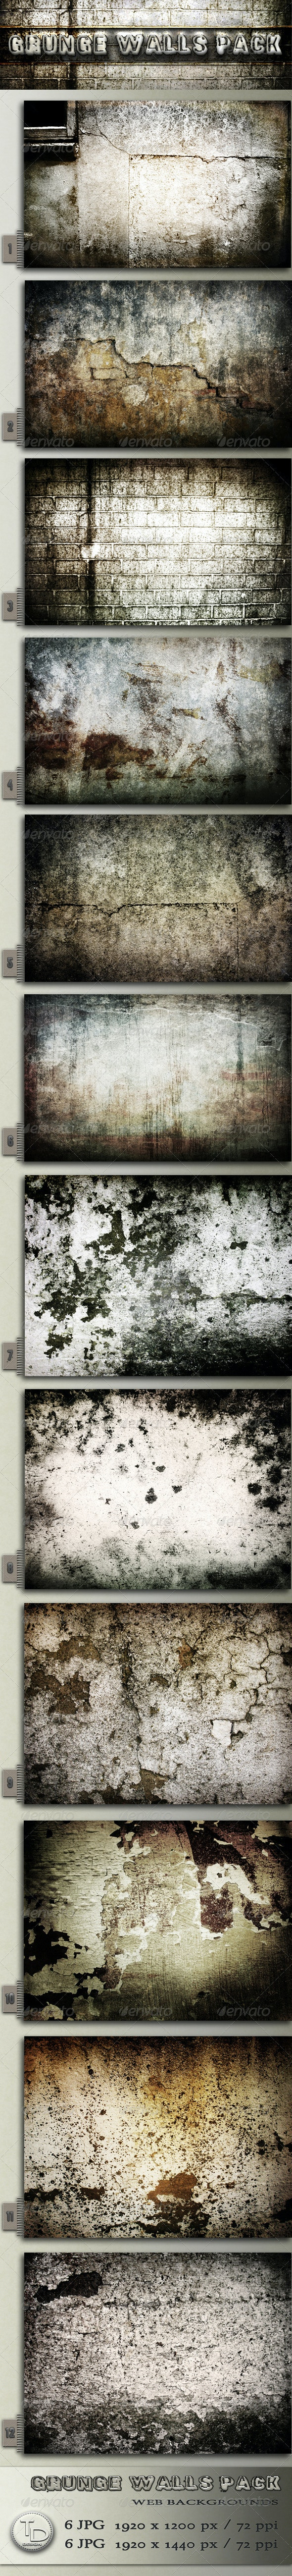 Grunge Walls Pack - Urban Backgrounds